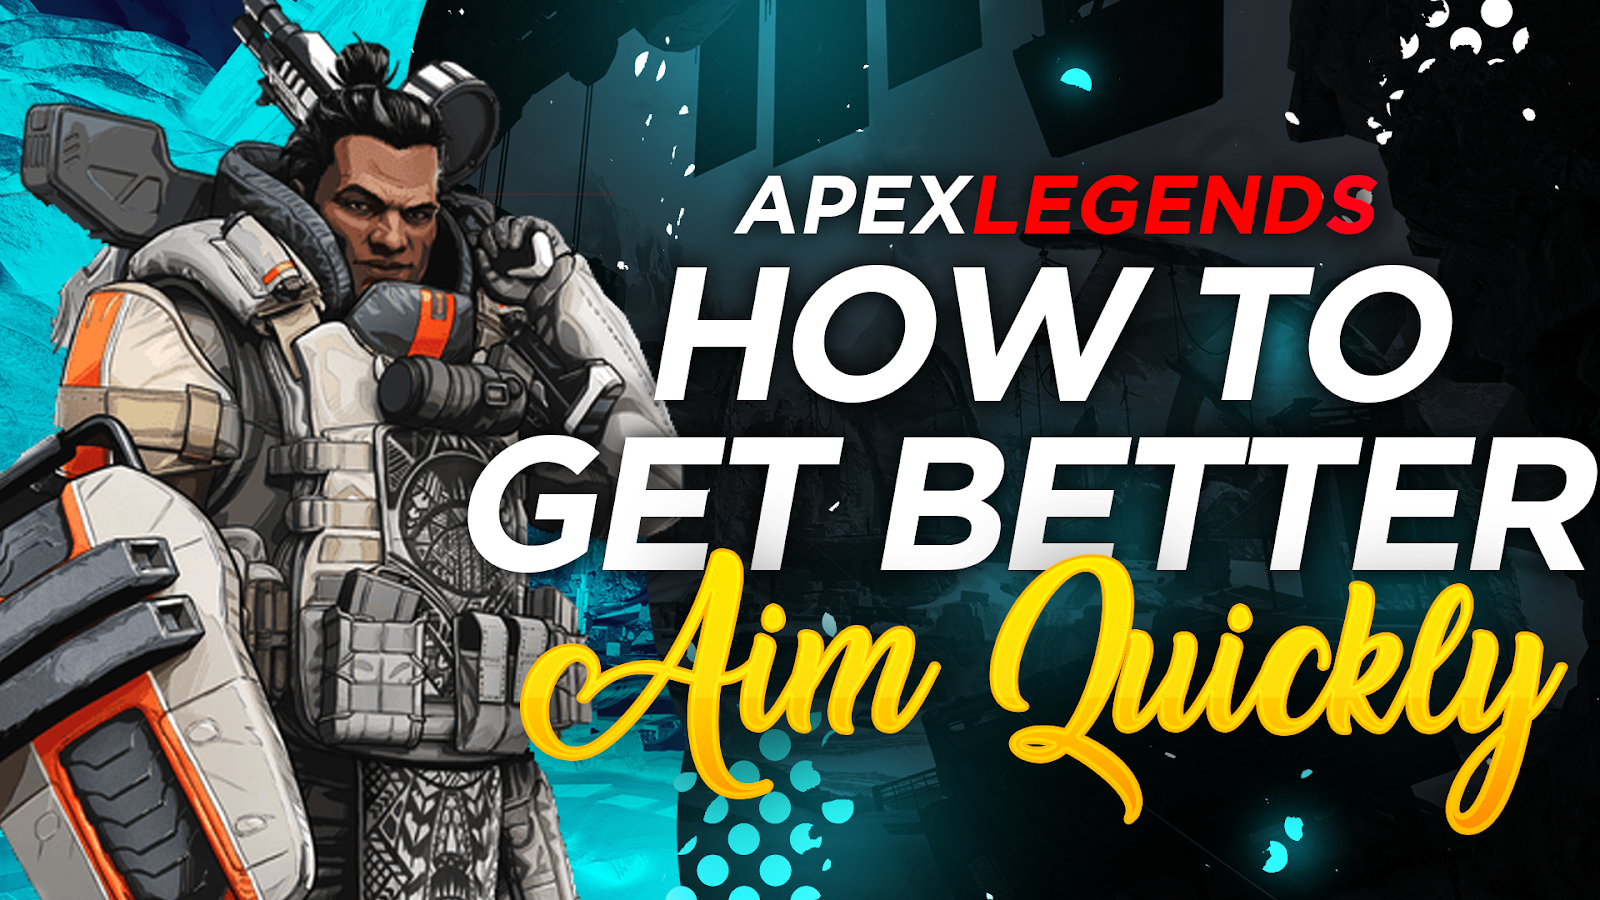 Apex Legends: How to Get Better Aim Quickly PC